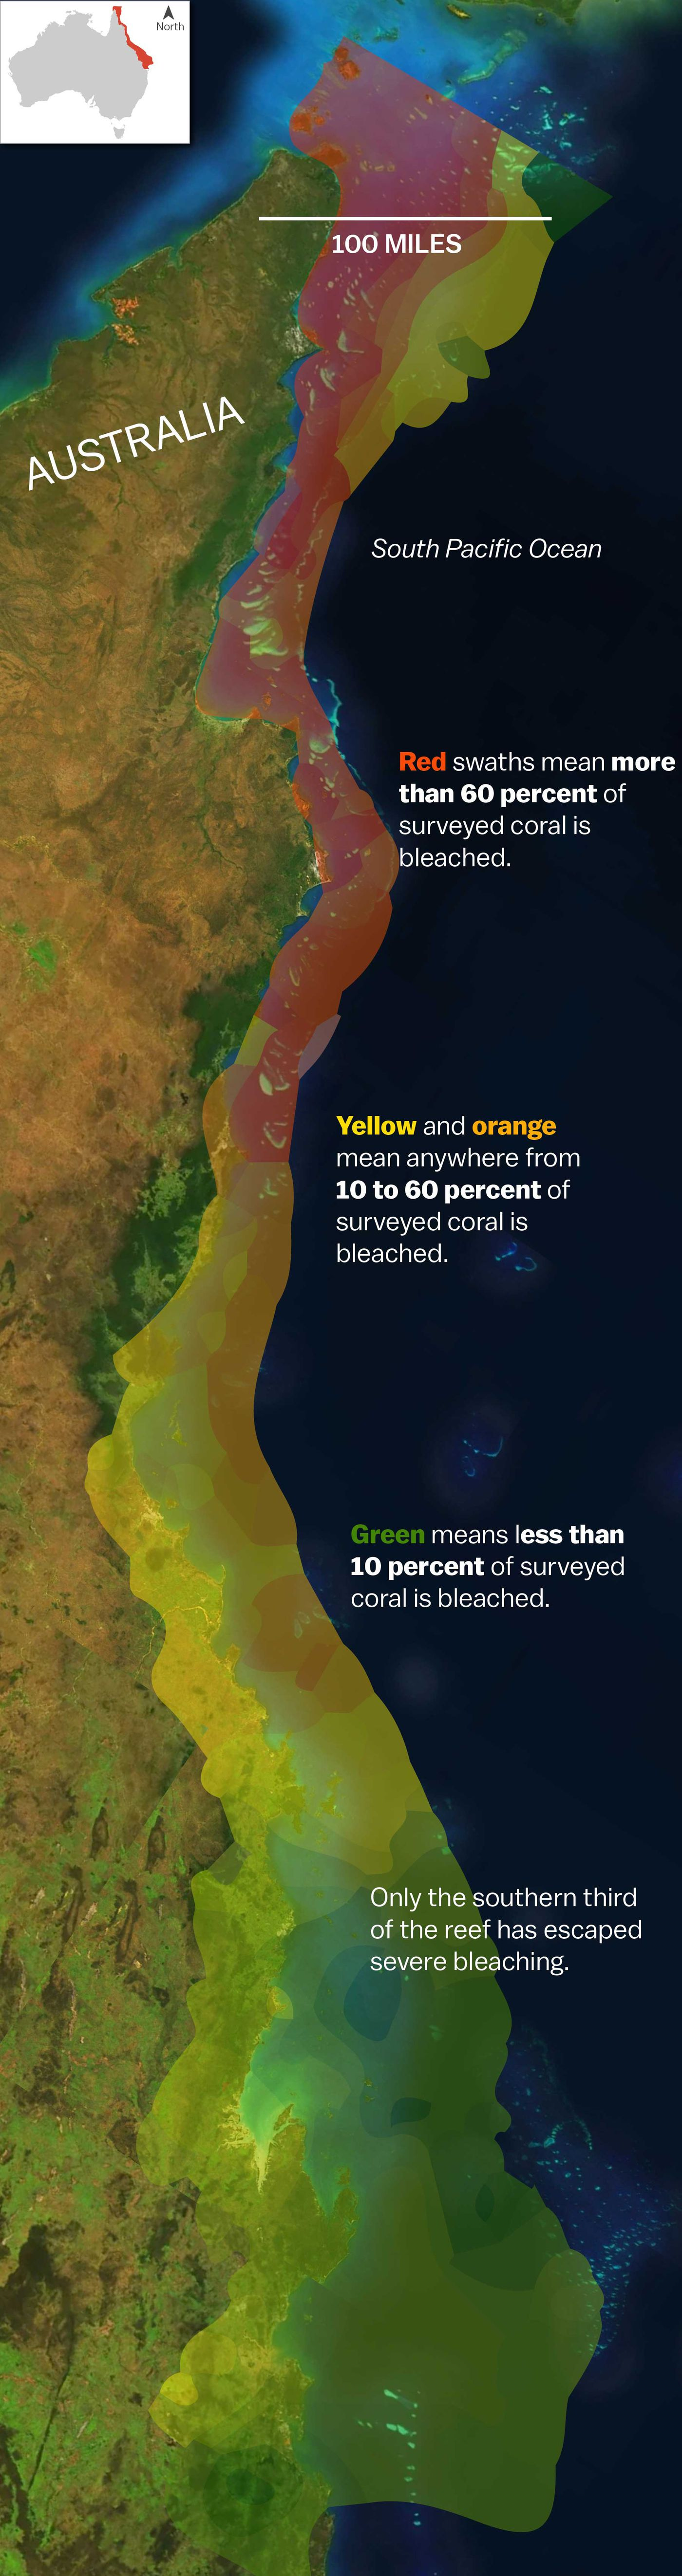 Experts The Great Barrier Reef Cannot Be Saved Vox